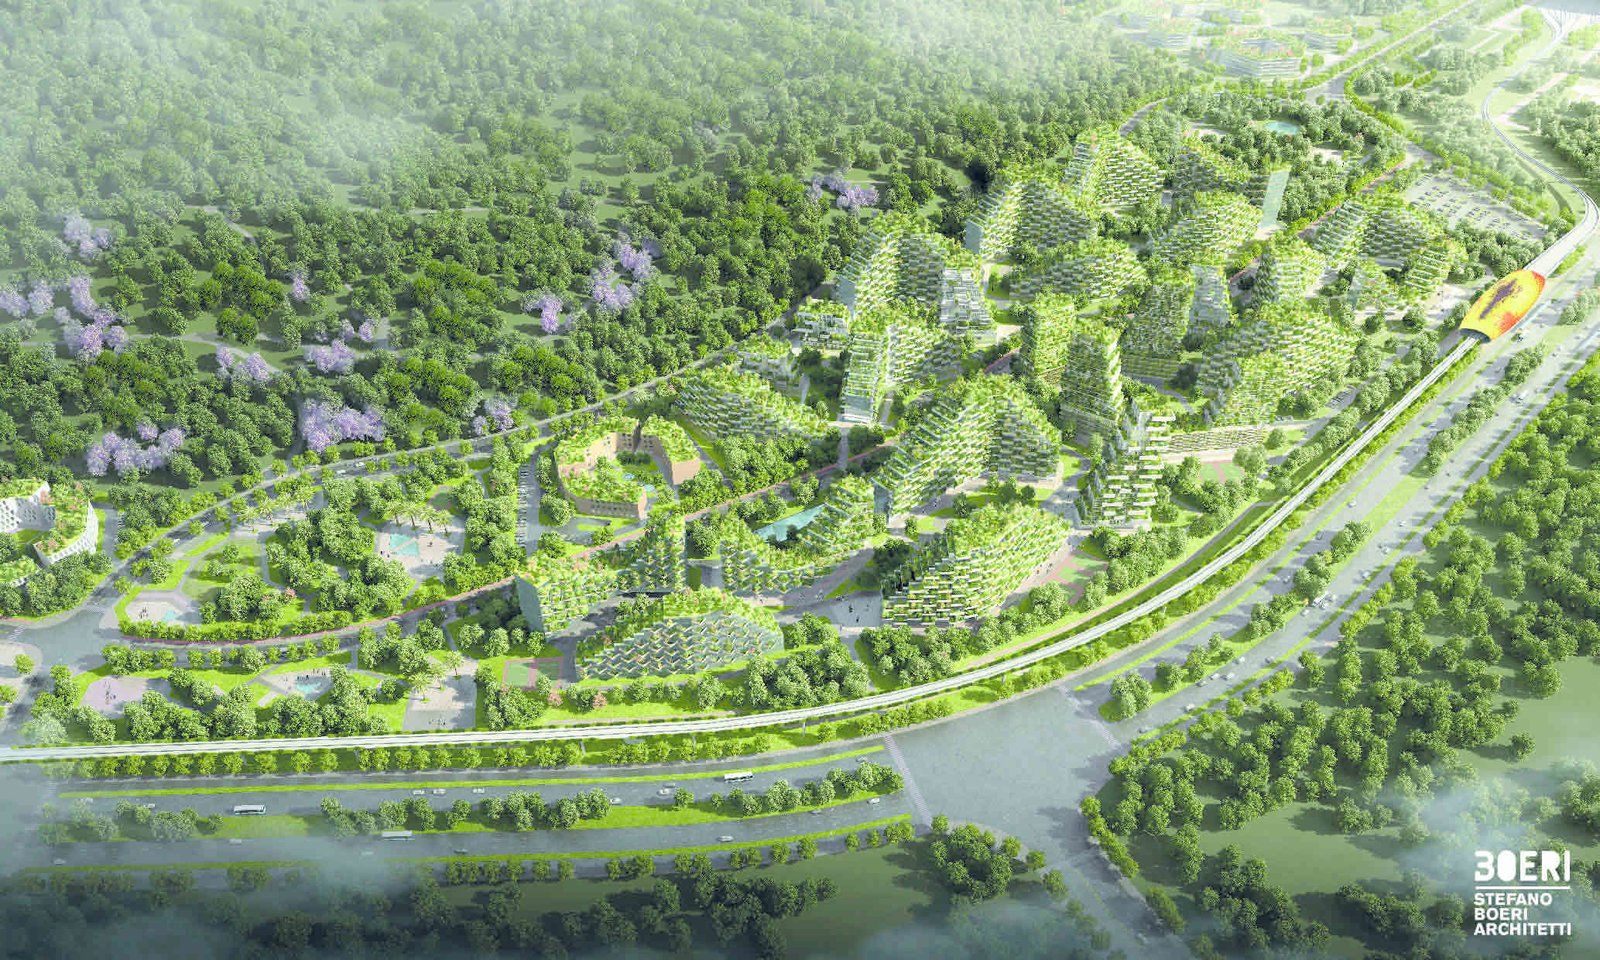 Photo 5 of 6 in A Green City in China That Will Play a Major Role in Fighting Air Pollution